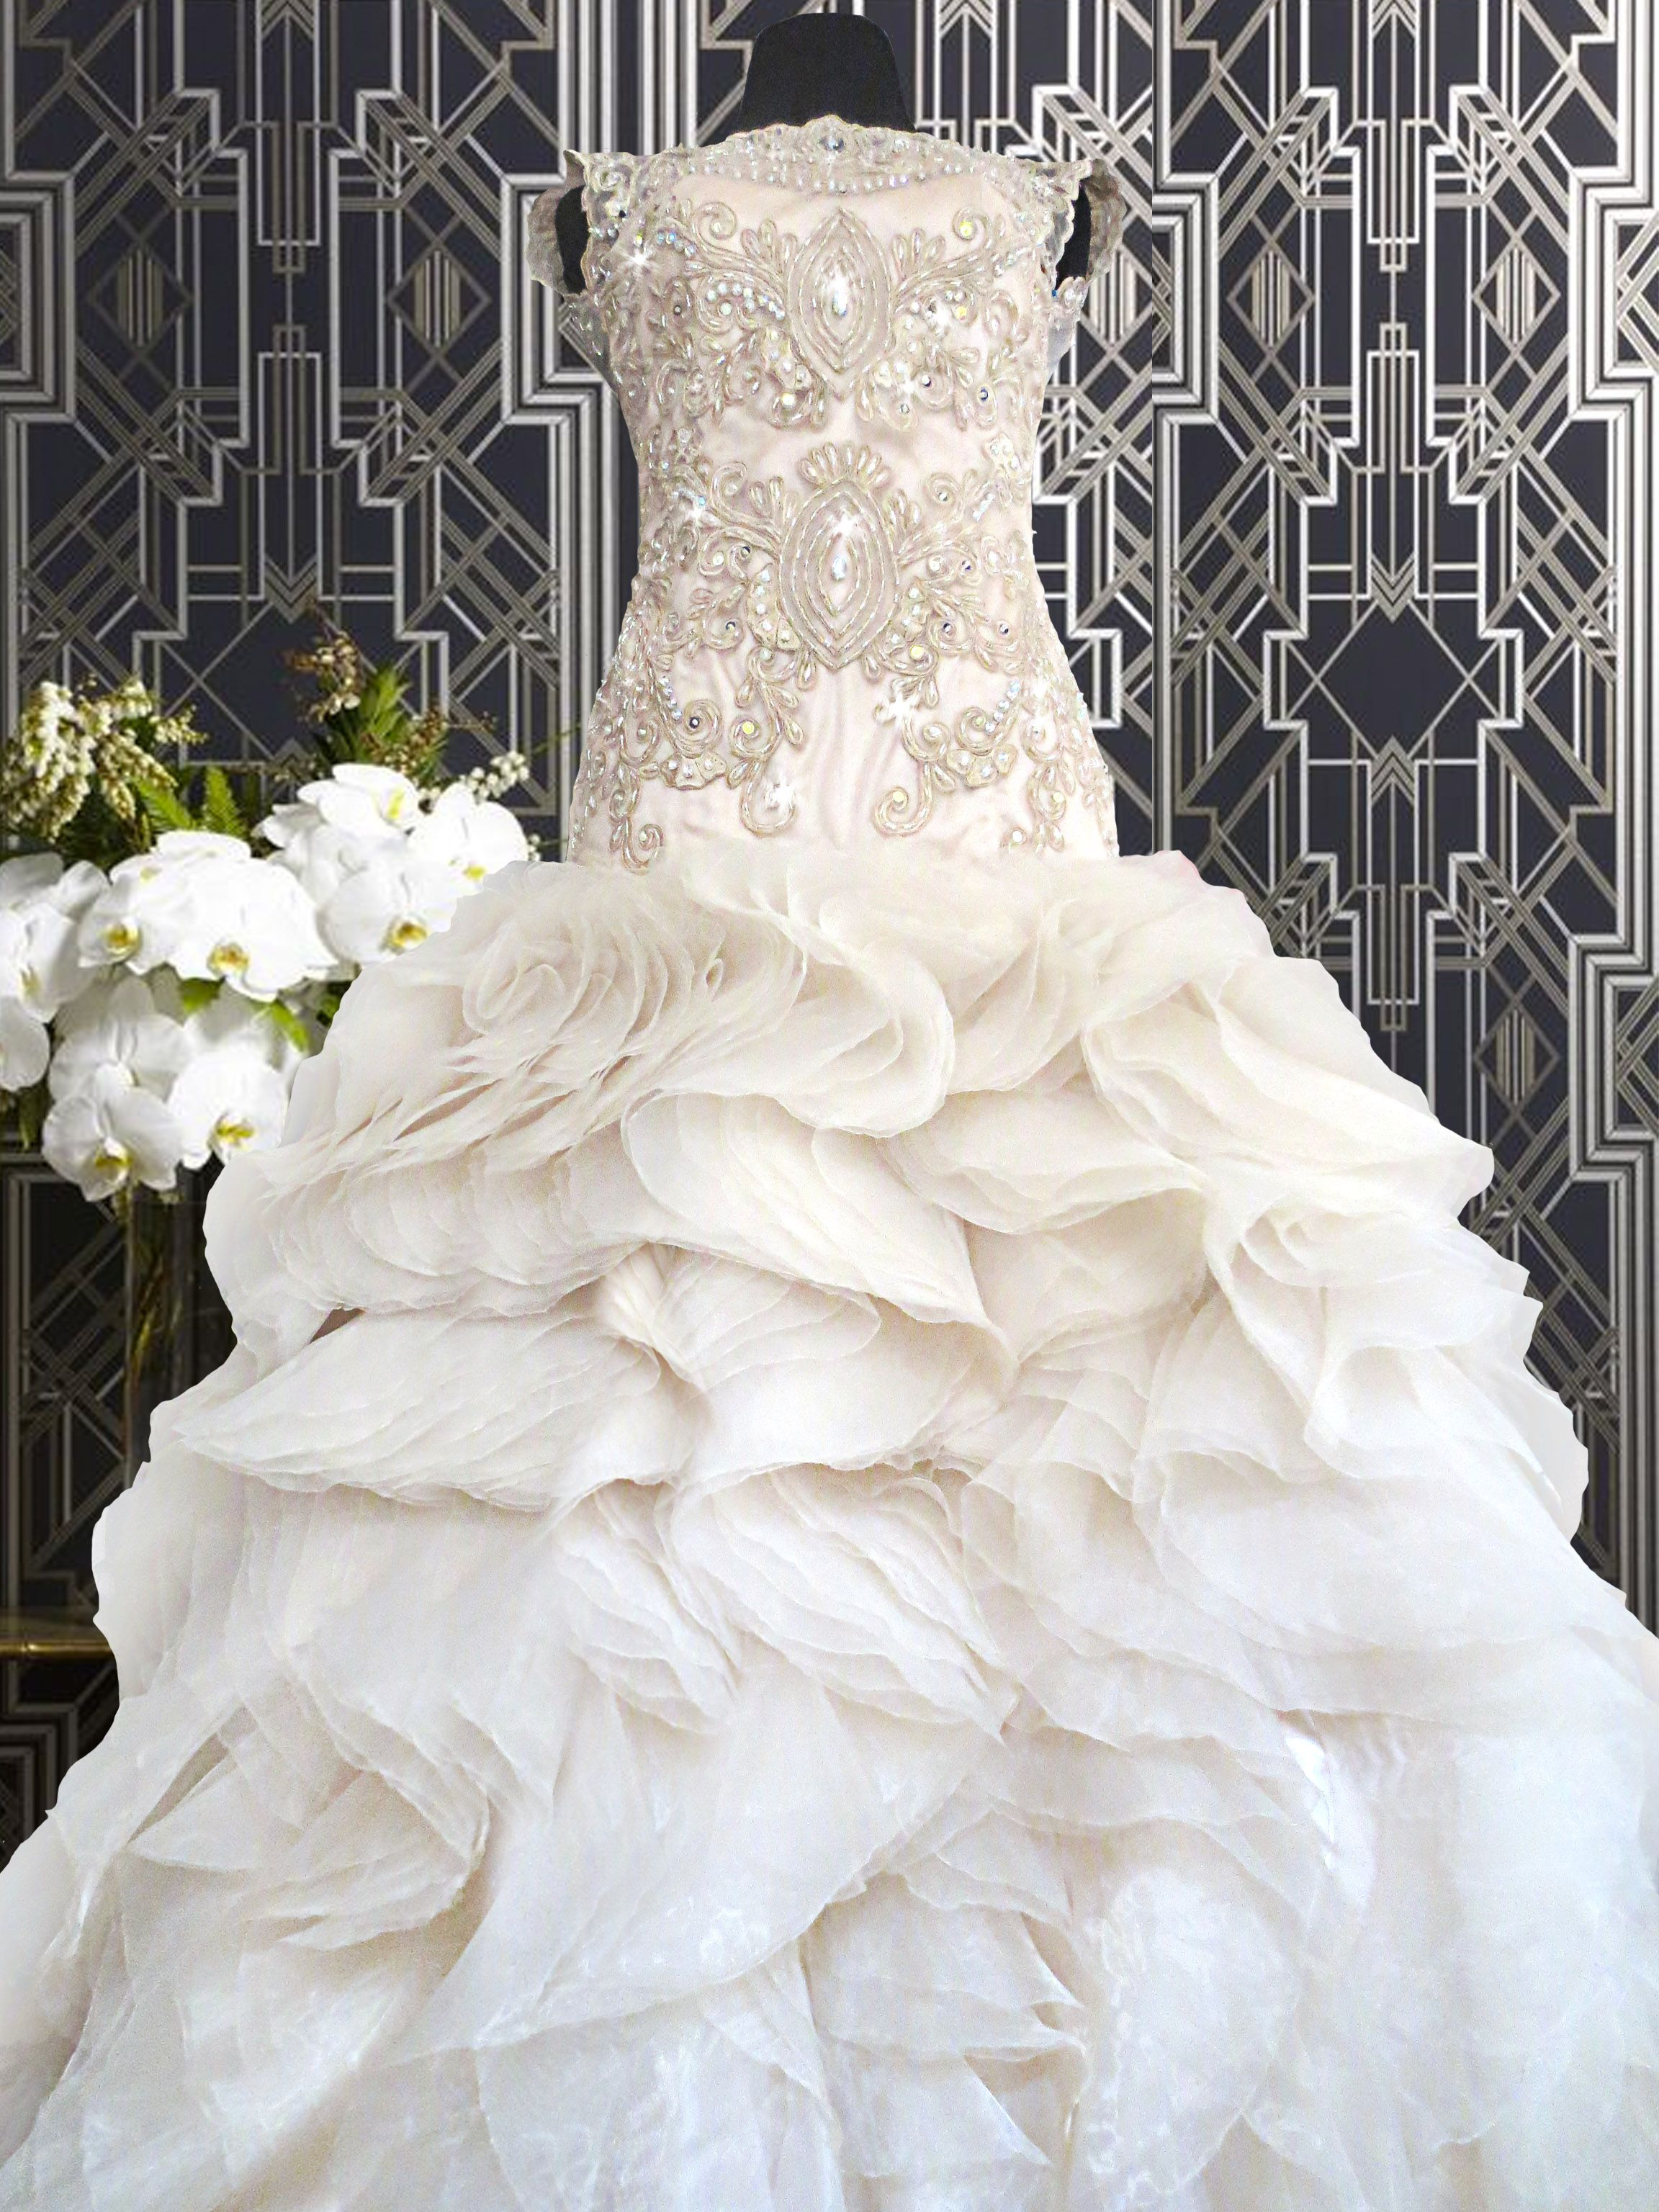 Extravagant Wedding Gown In Manila Quezon City It Has A Great Gatsy Luxurious Feel